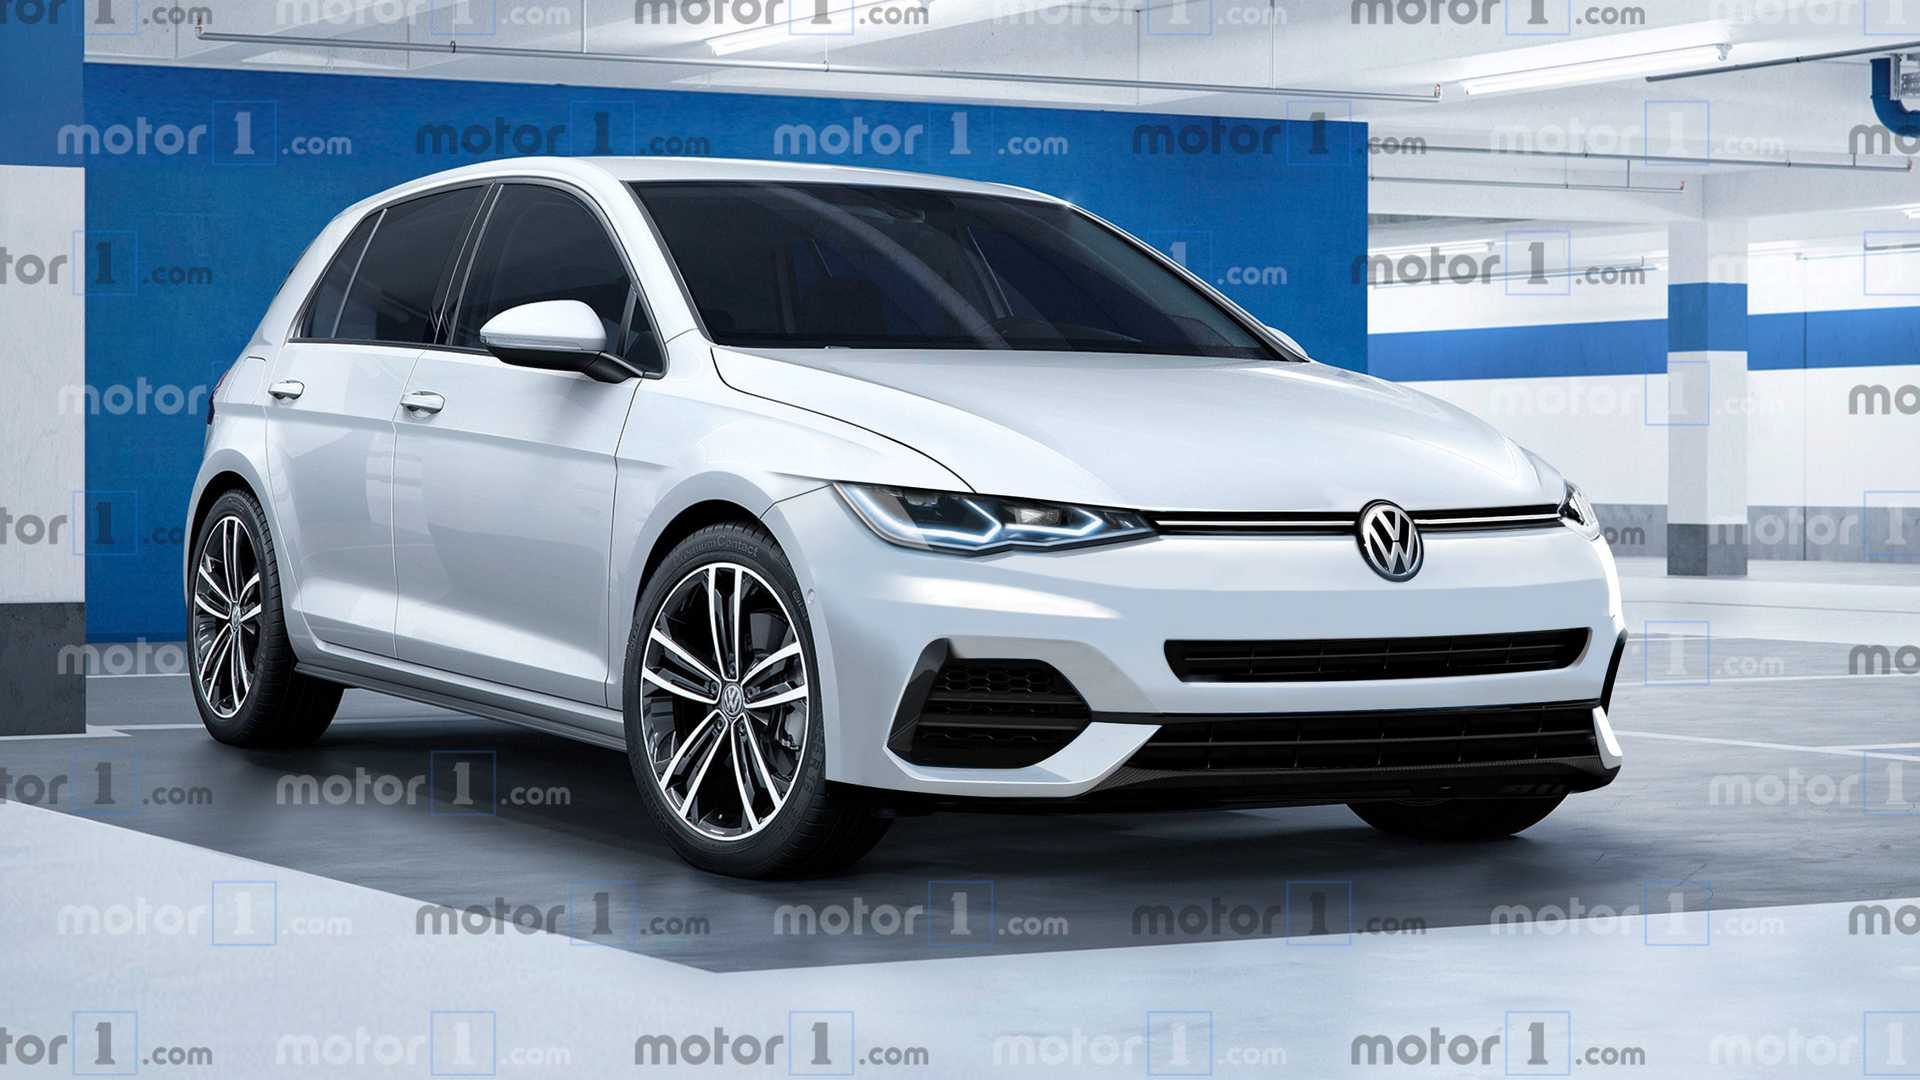 74 The Best 2020 Volkswagen Golf Sportwagen Redesign And Concept